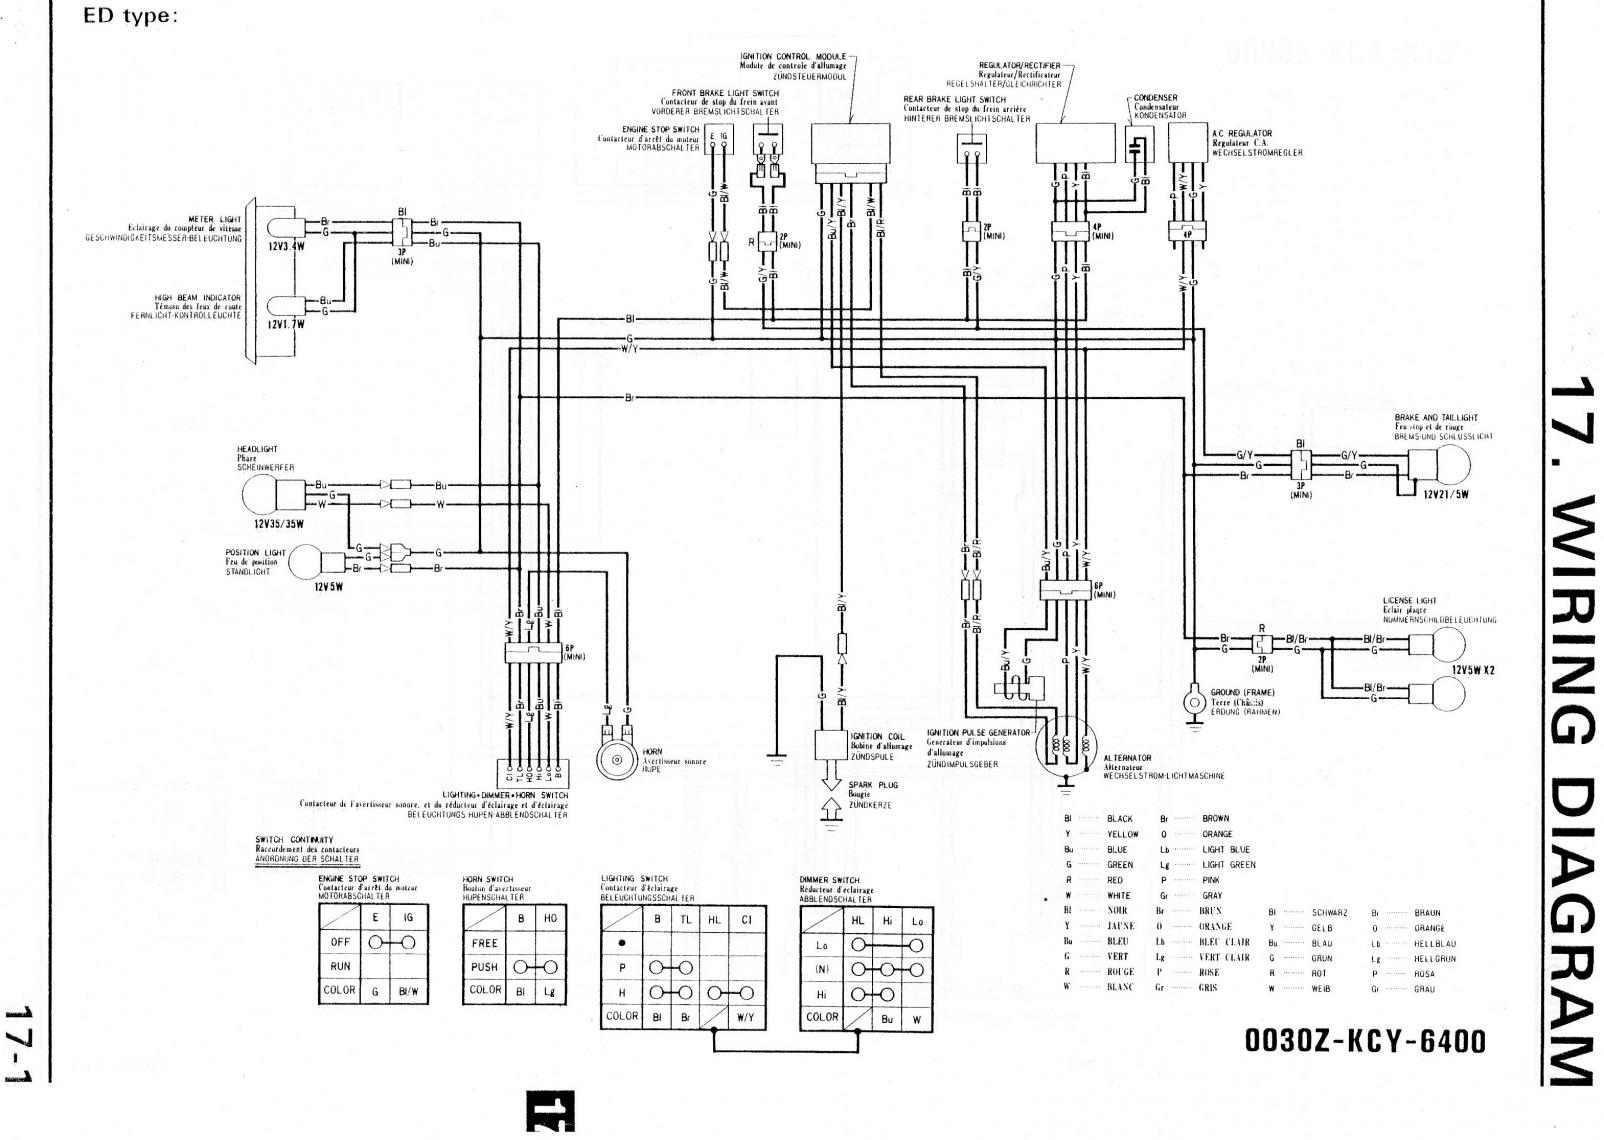 wiring diagram for mitsubishi l200 wiring diagram for mitsubishi l200 usbmodels co